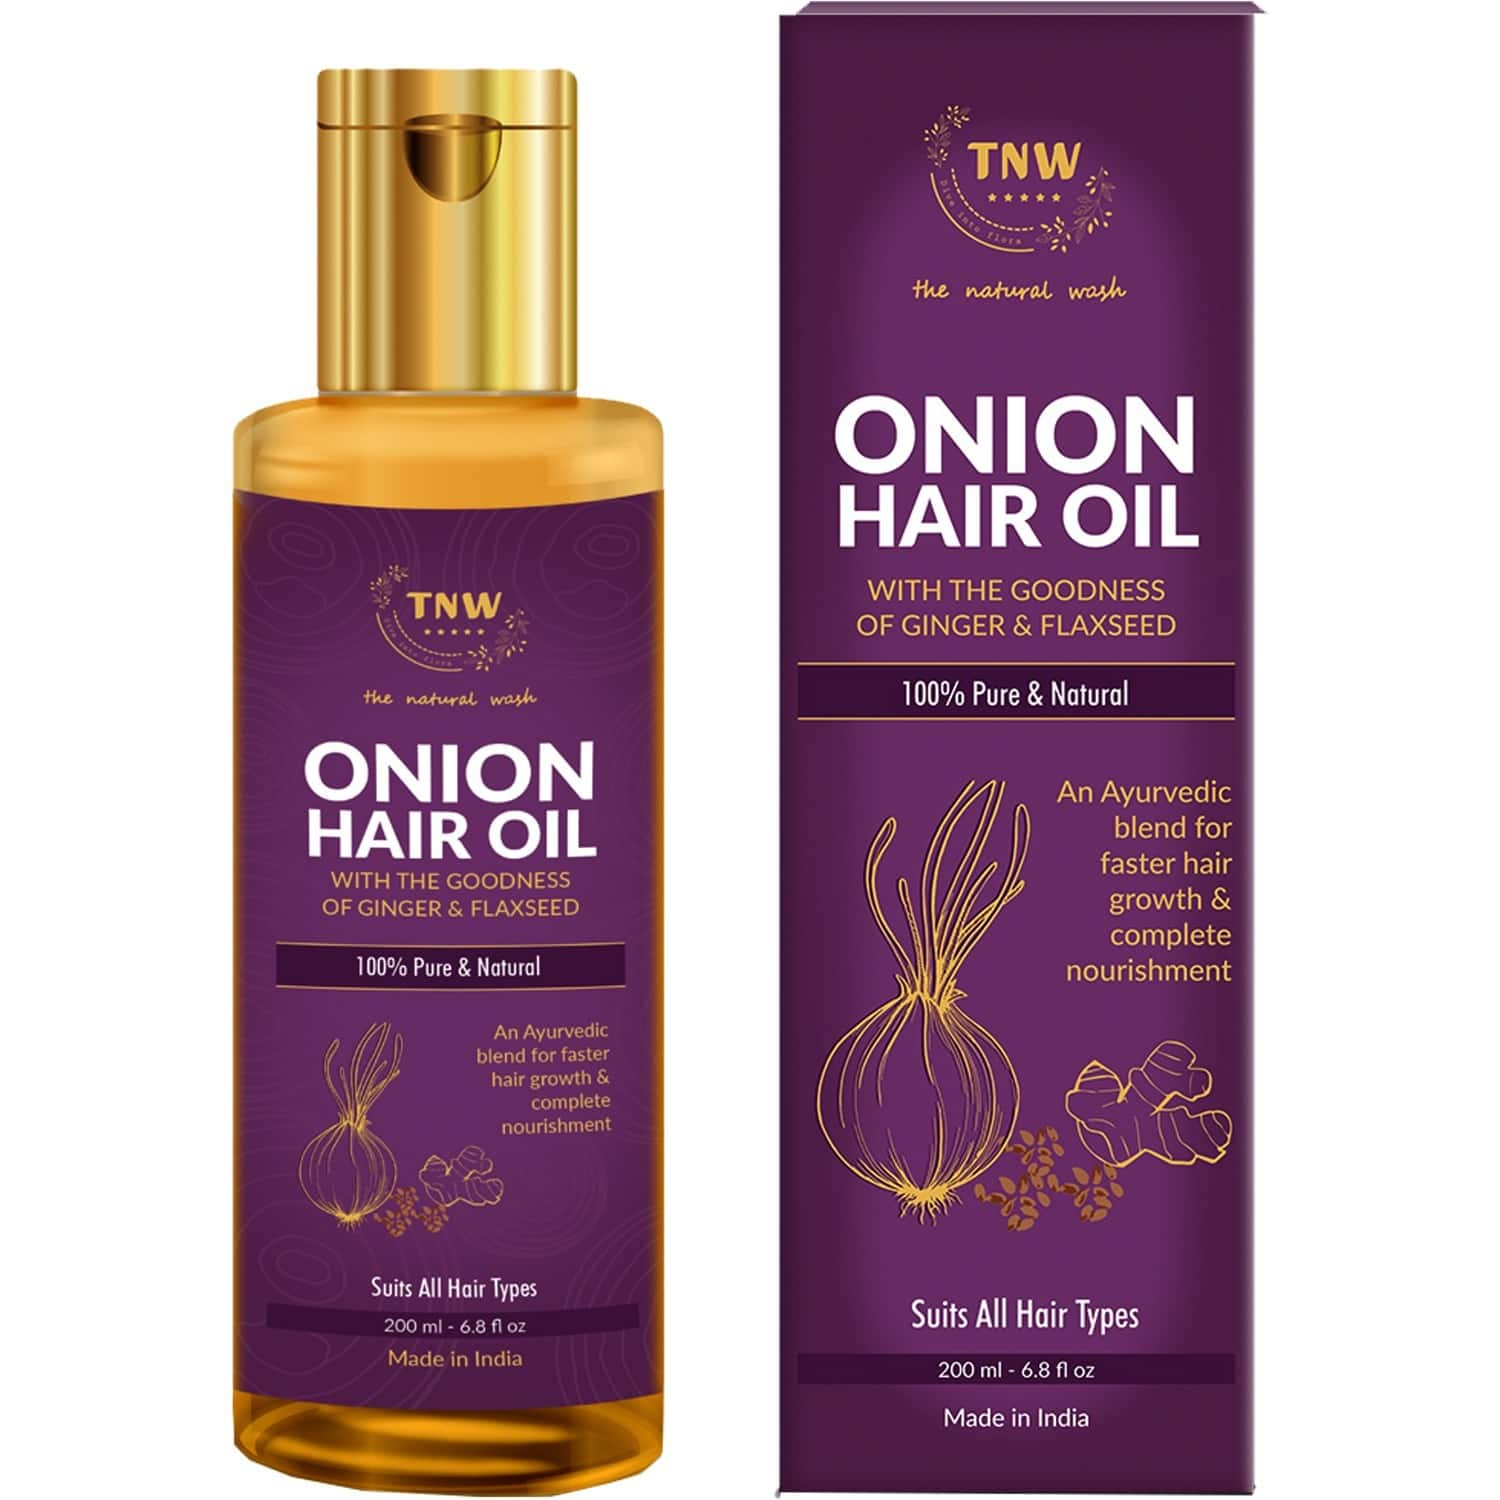 Tnw -the Natural Wash Onion Hair Oil For Hair Growth With Complete Hair Nourishment - 200 Ml